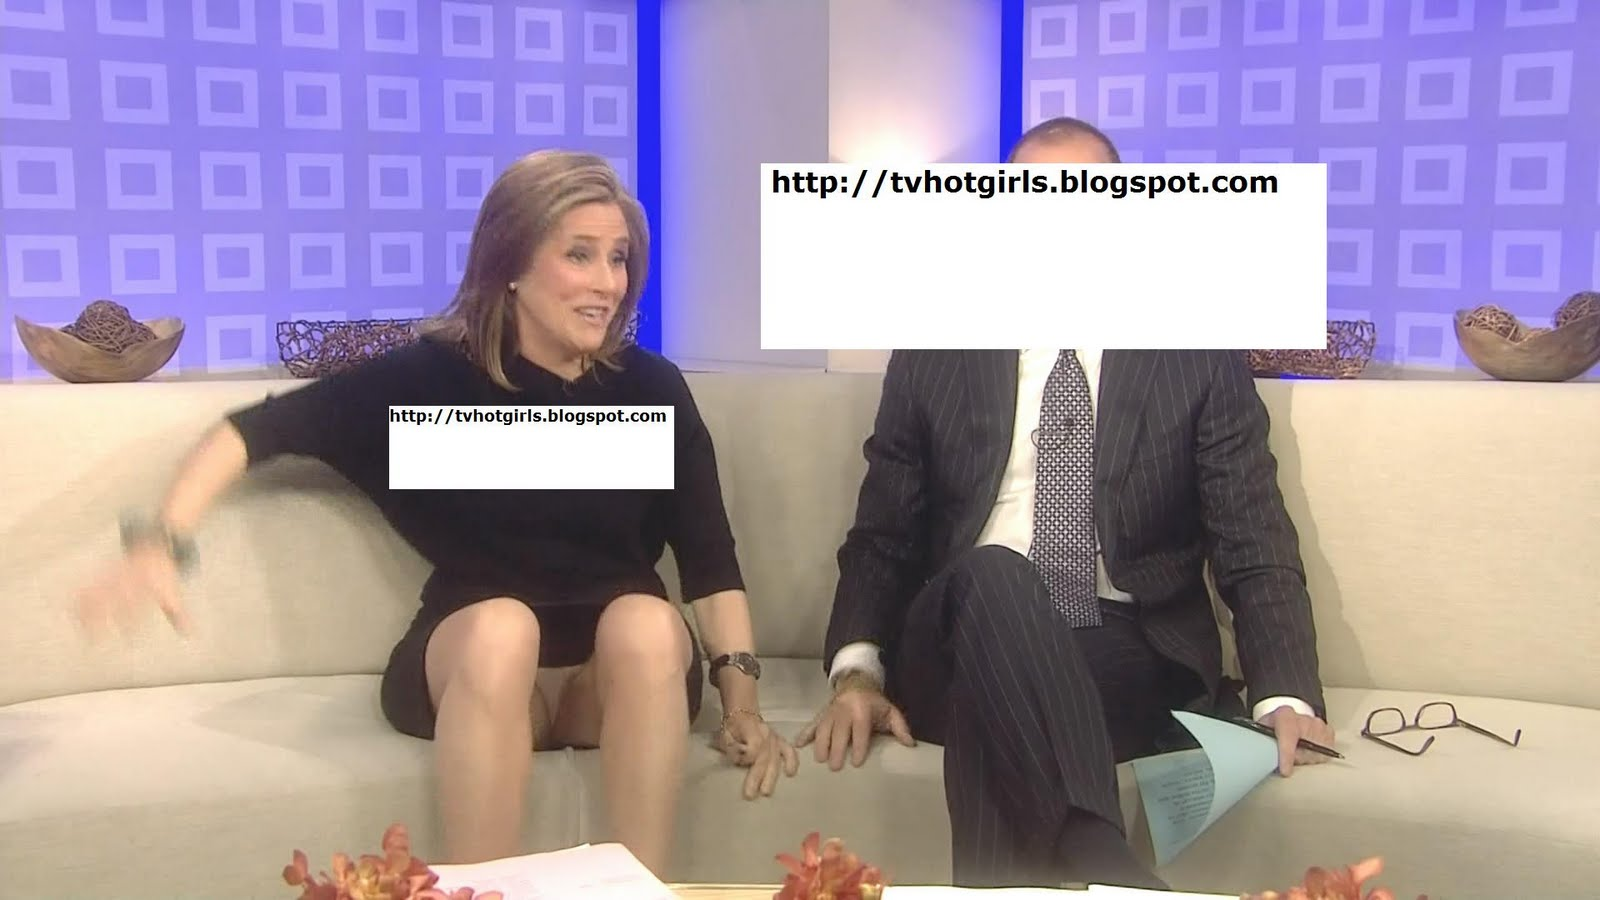 Nice video! news anchor upskirts